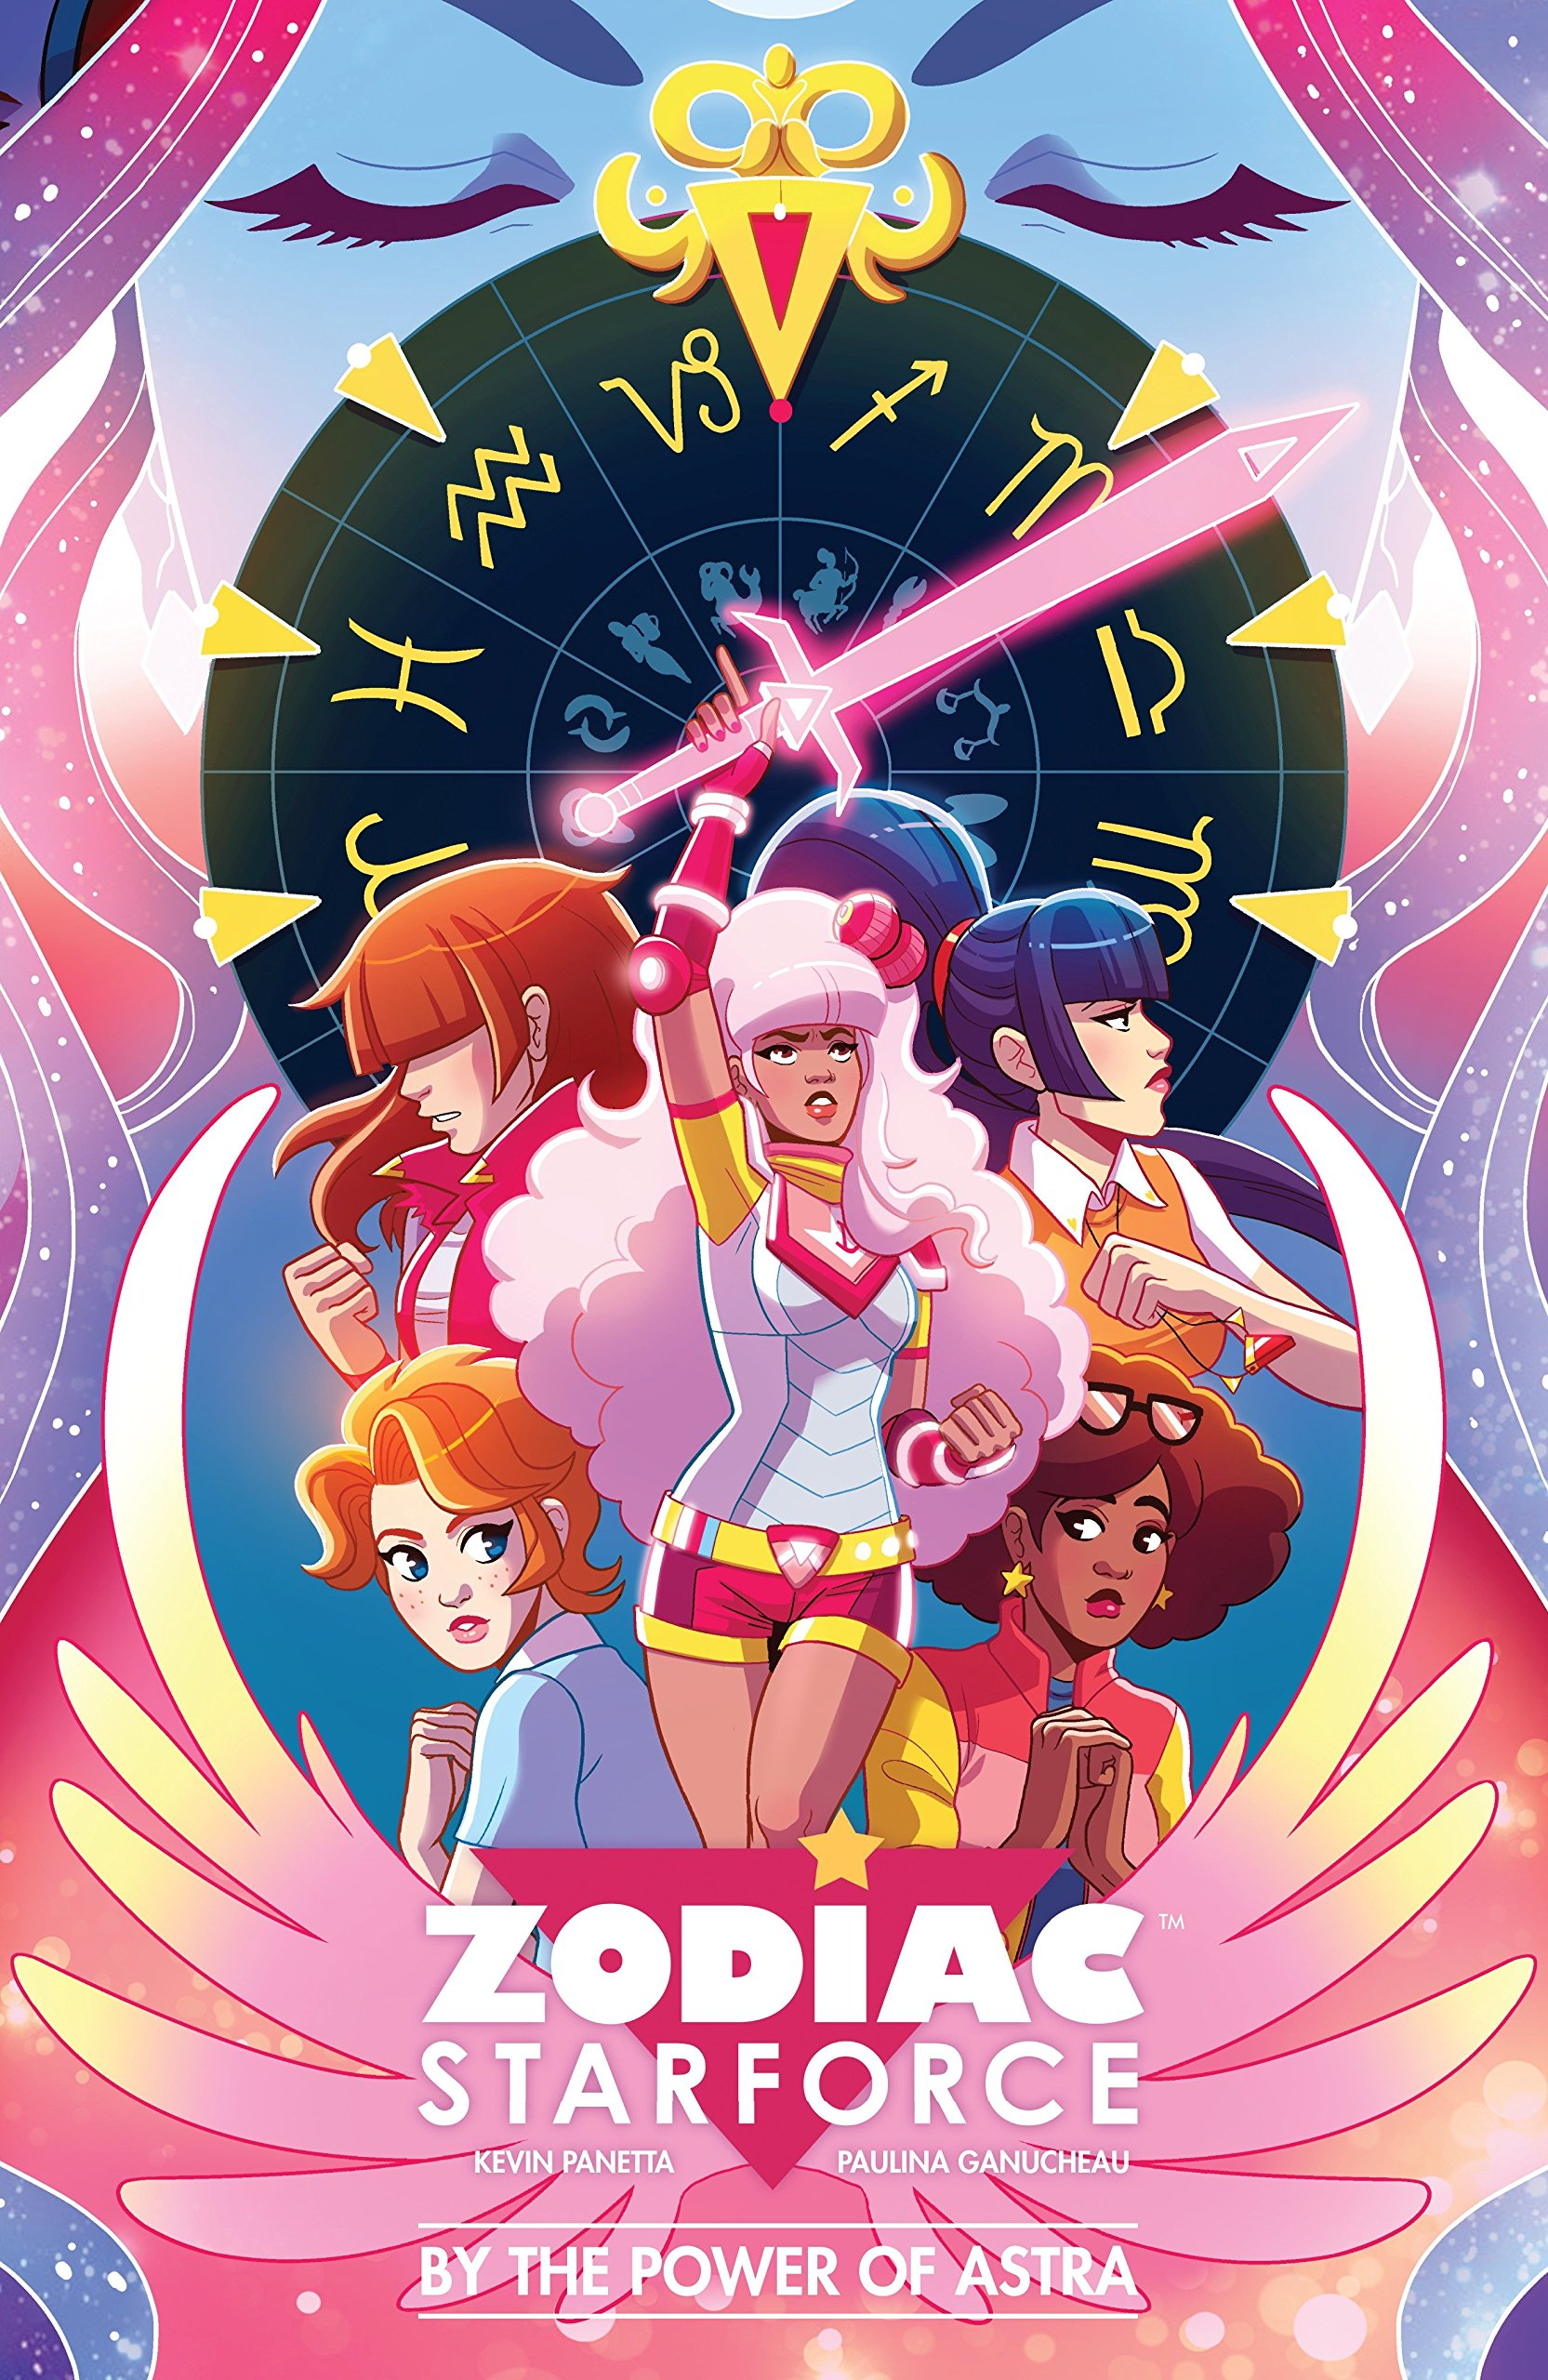 Zodiac Starforce 1 - By the power of Astra